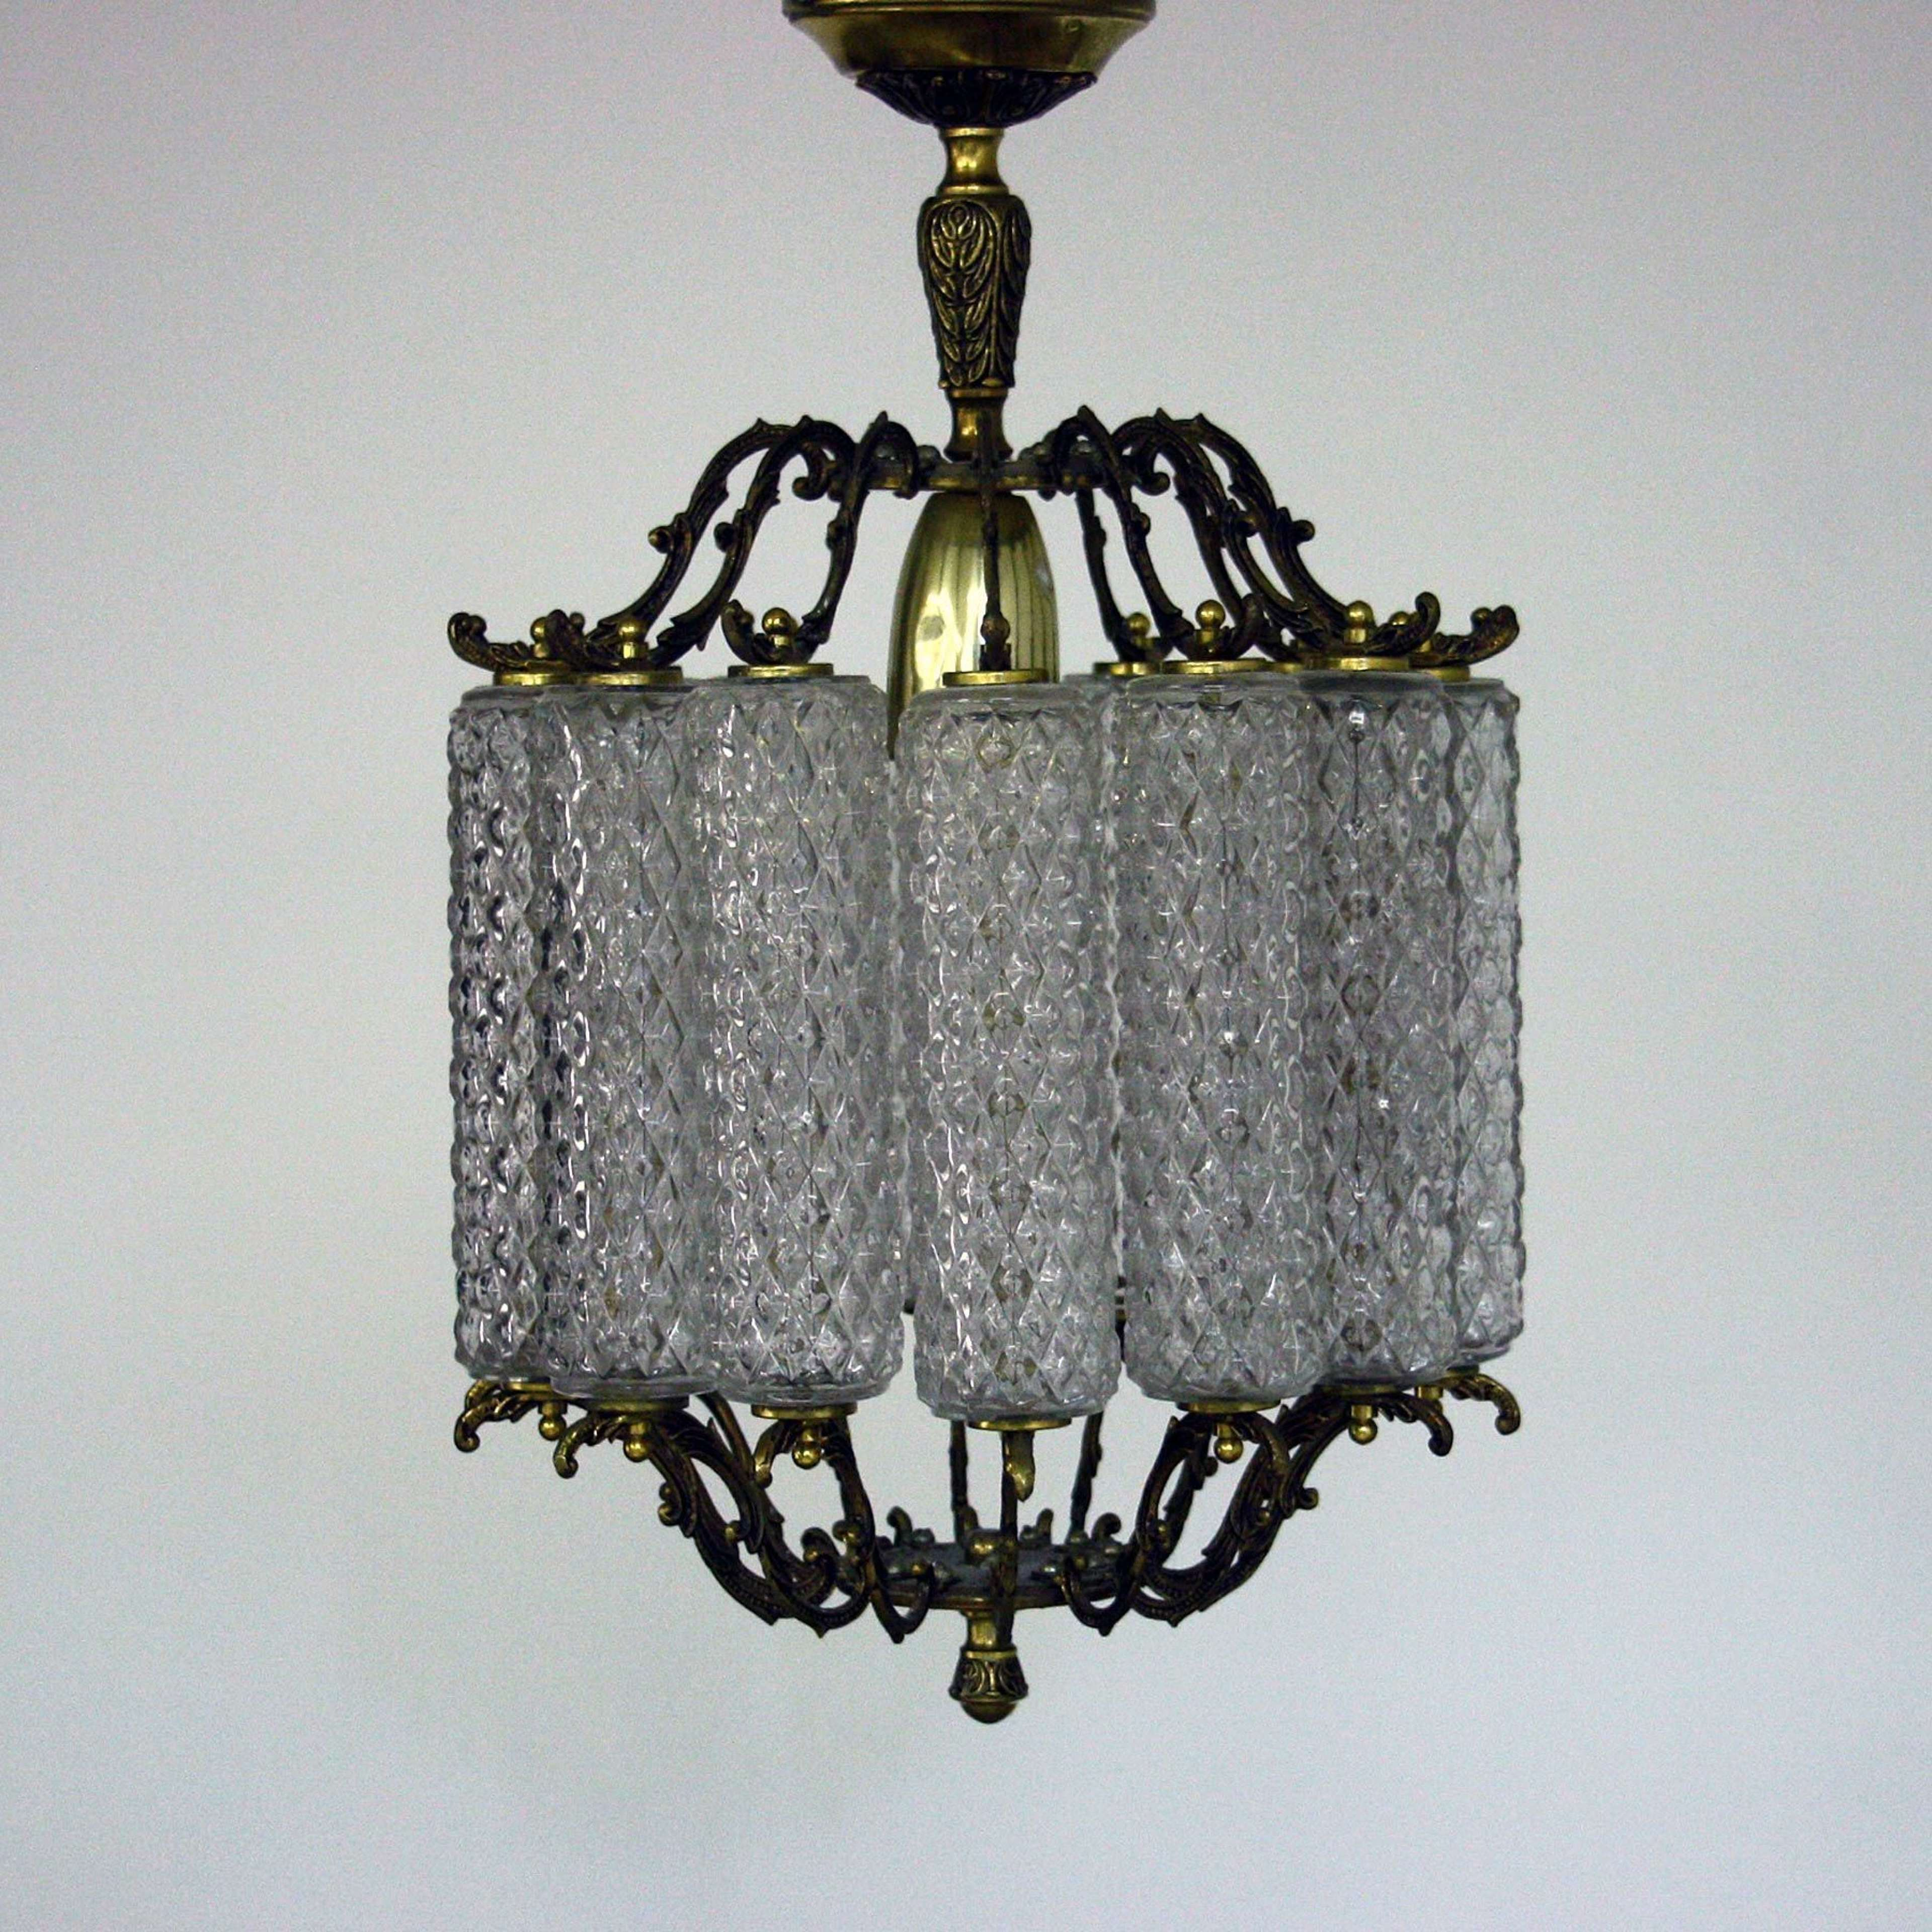 Vintage & New Stained Glass Chandeliers | Chairish